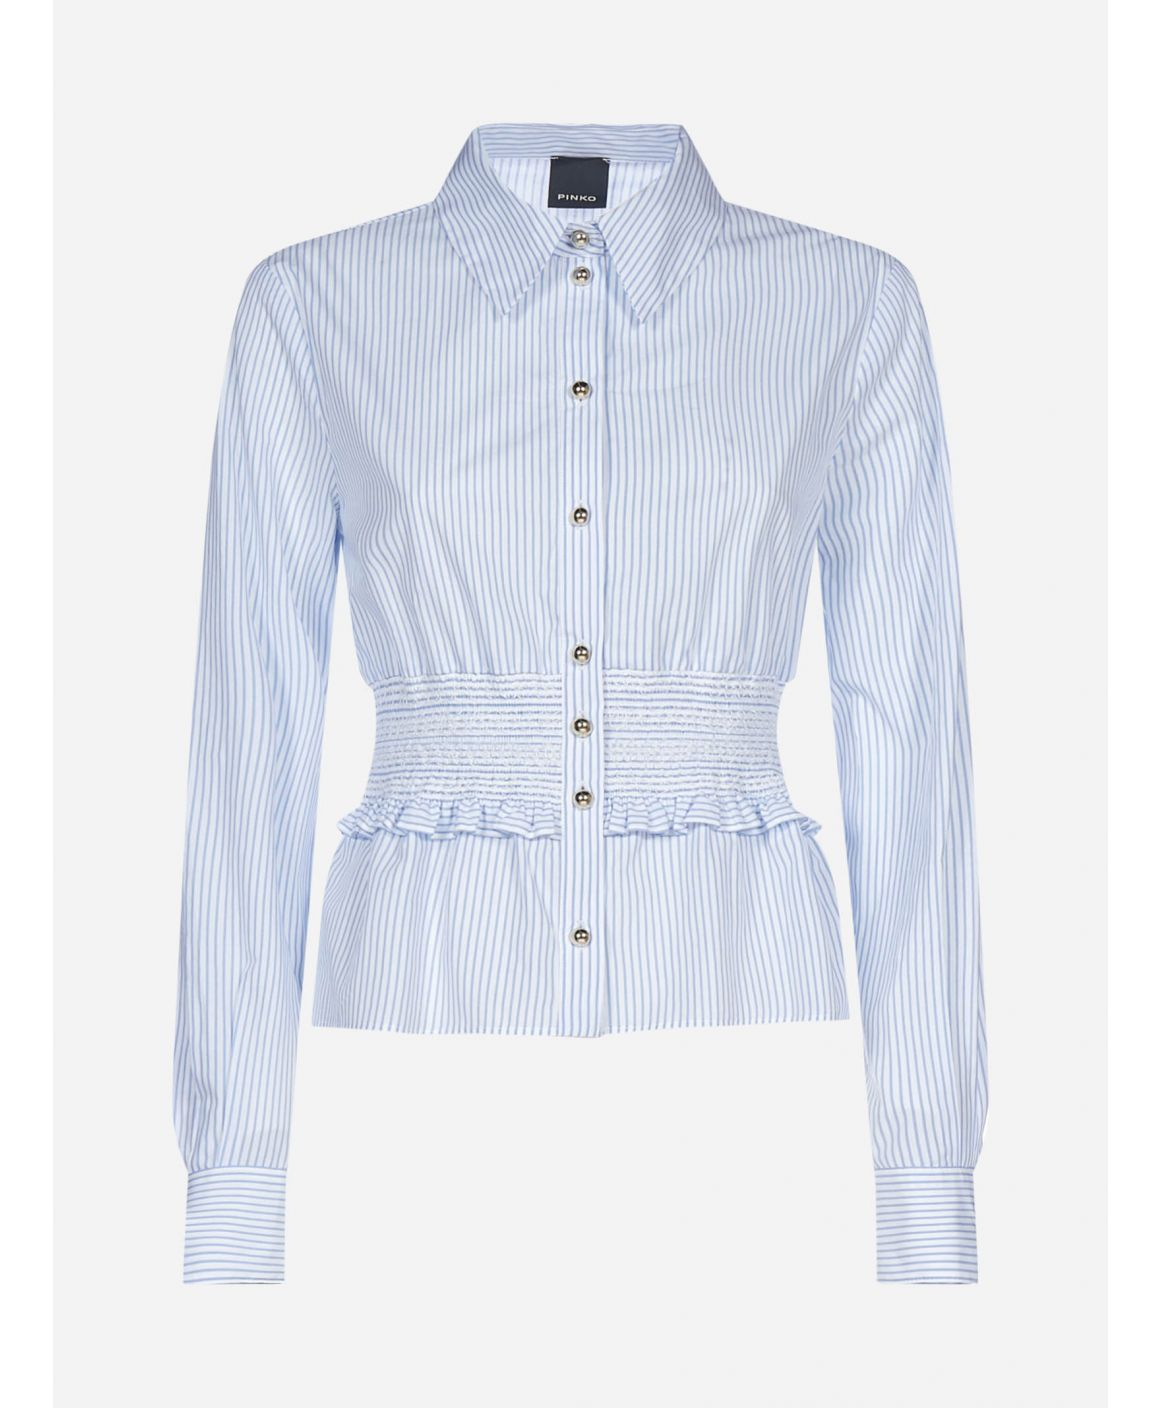 Macilento striped cotton shirt